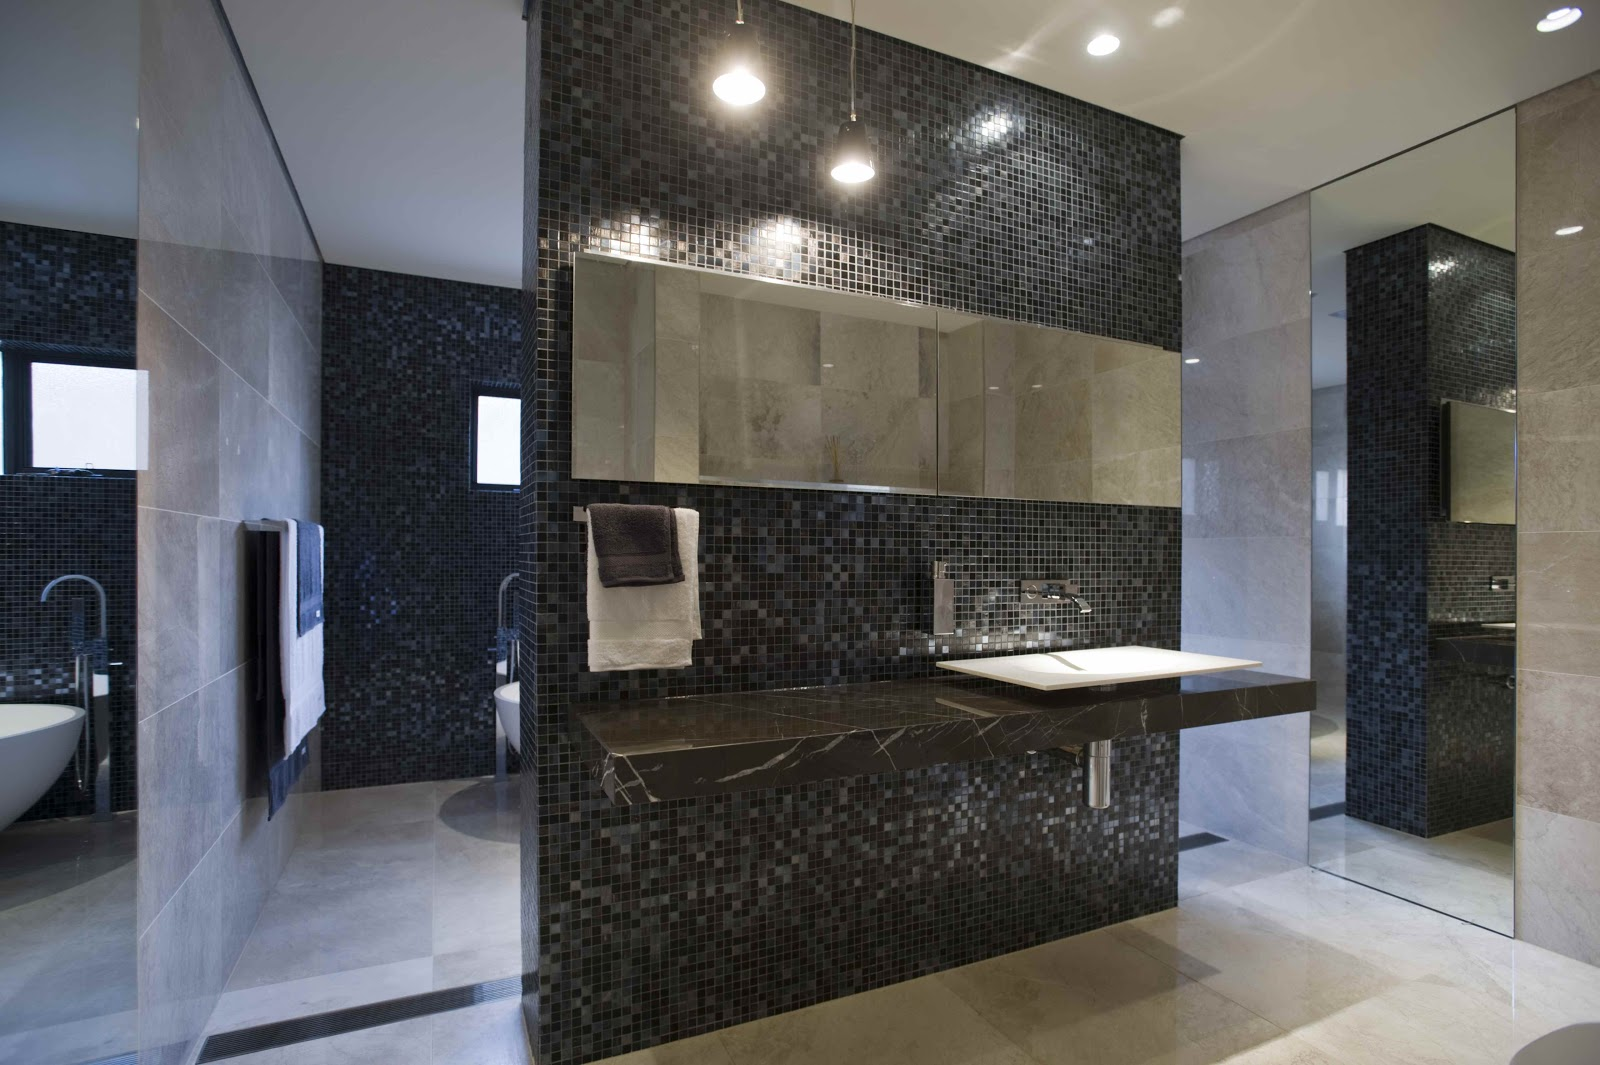 Great Mosaic Bathroom Tile Design Ideas 1600 x 1065 · 264 kB · jpeg